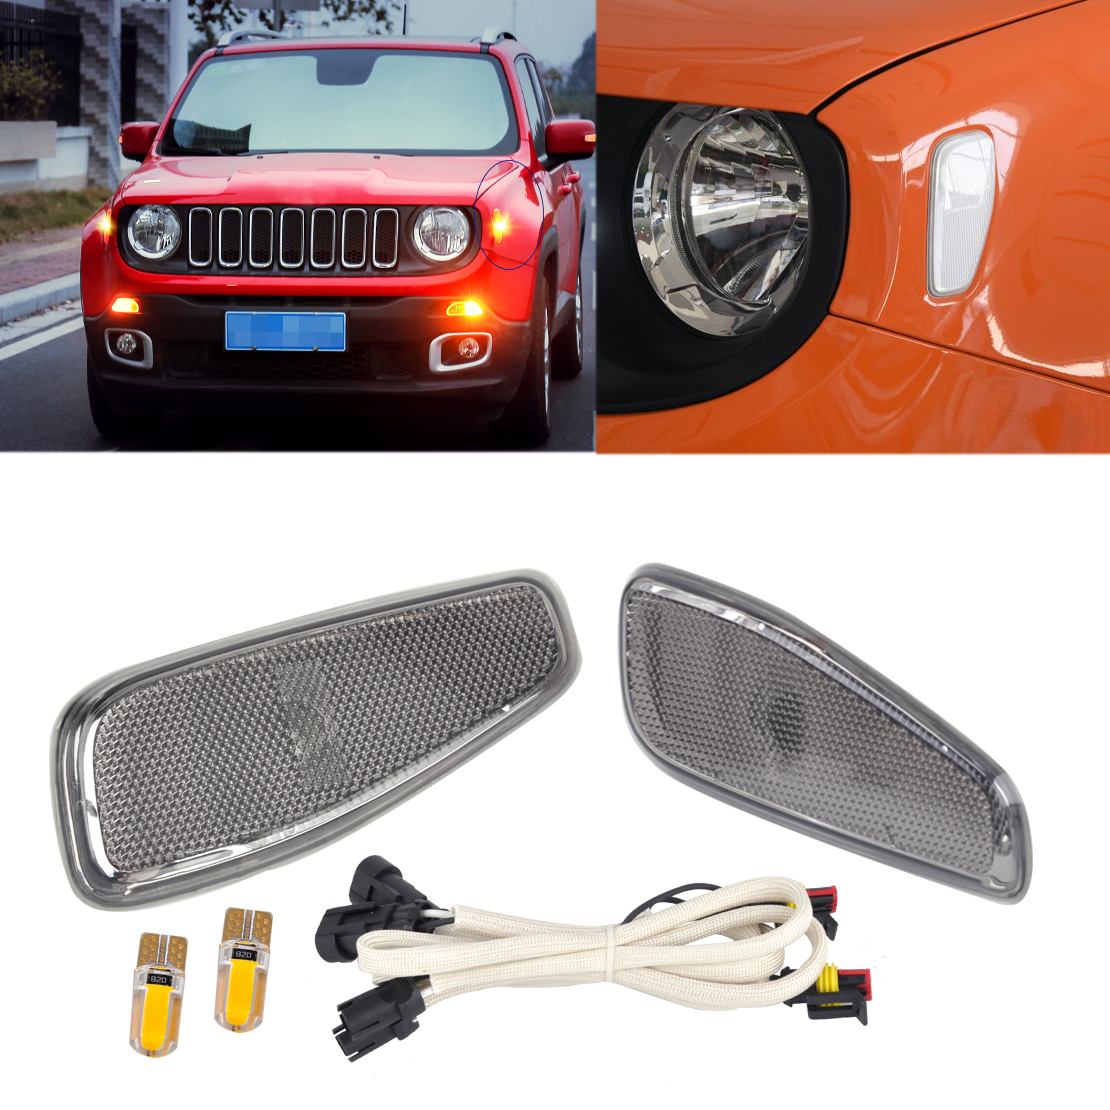 CITALL 2pcs Side Marker Lamp Covers with LED Light Cable Fit for Jeep Renegade 2015 2016 LHD Only 68256050AA 68256049AA